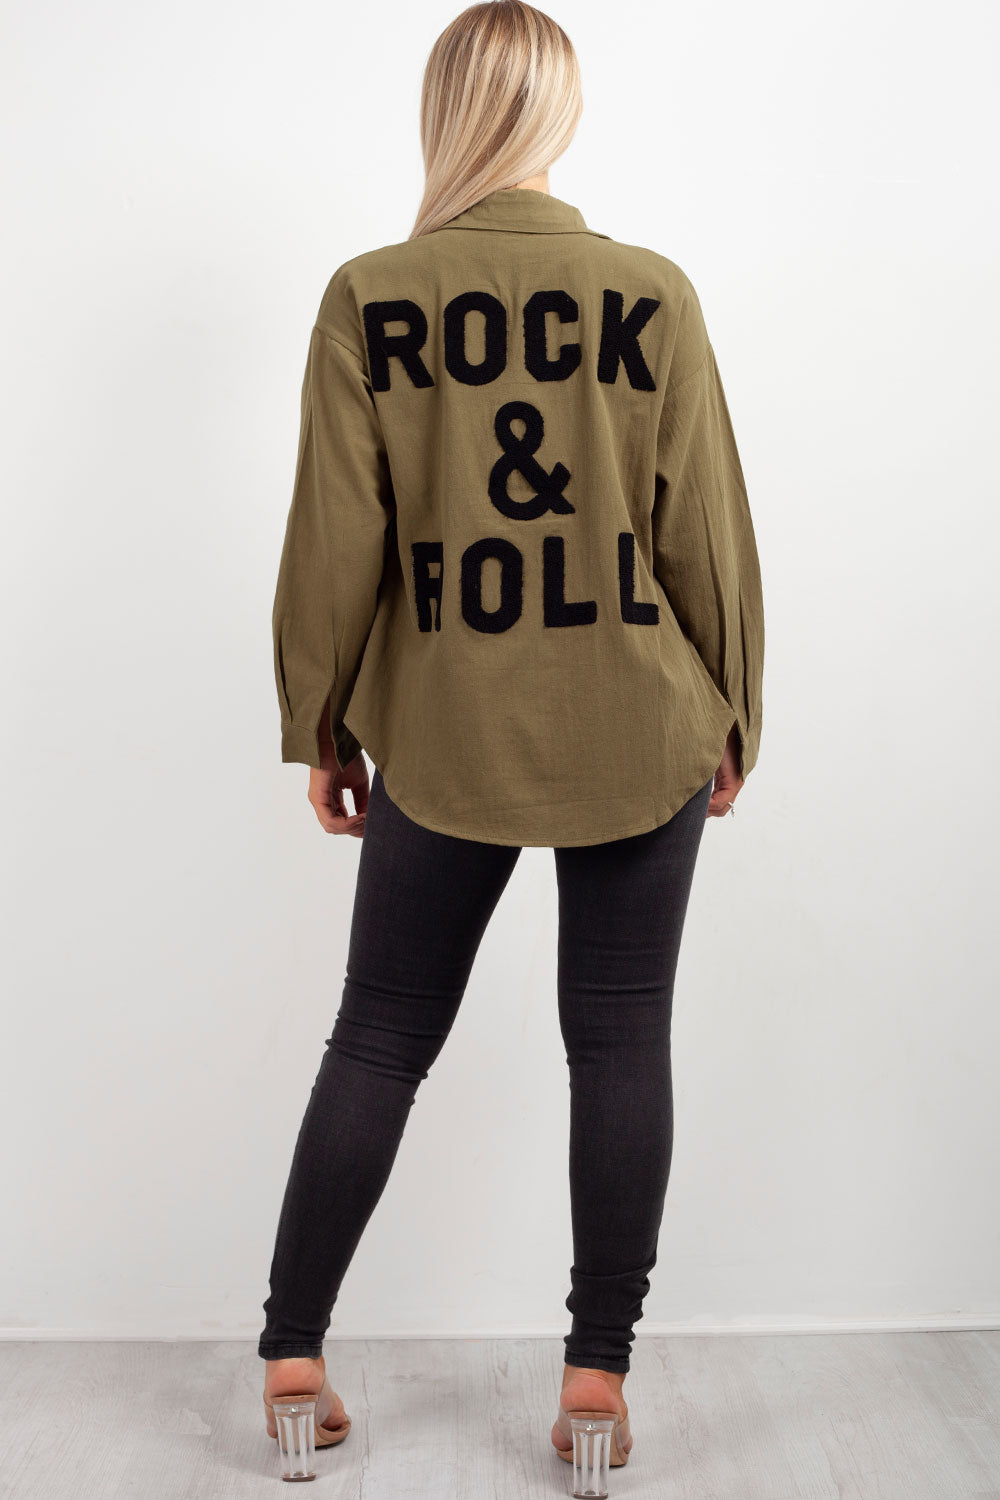 rock & roll slogan khaki oversized shirt